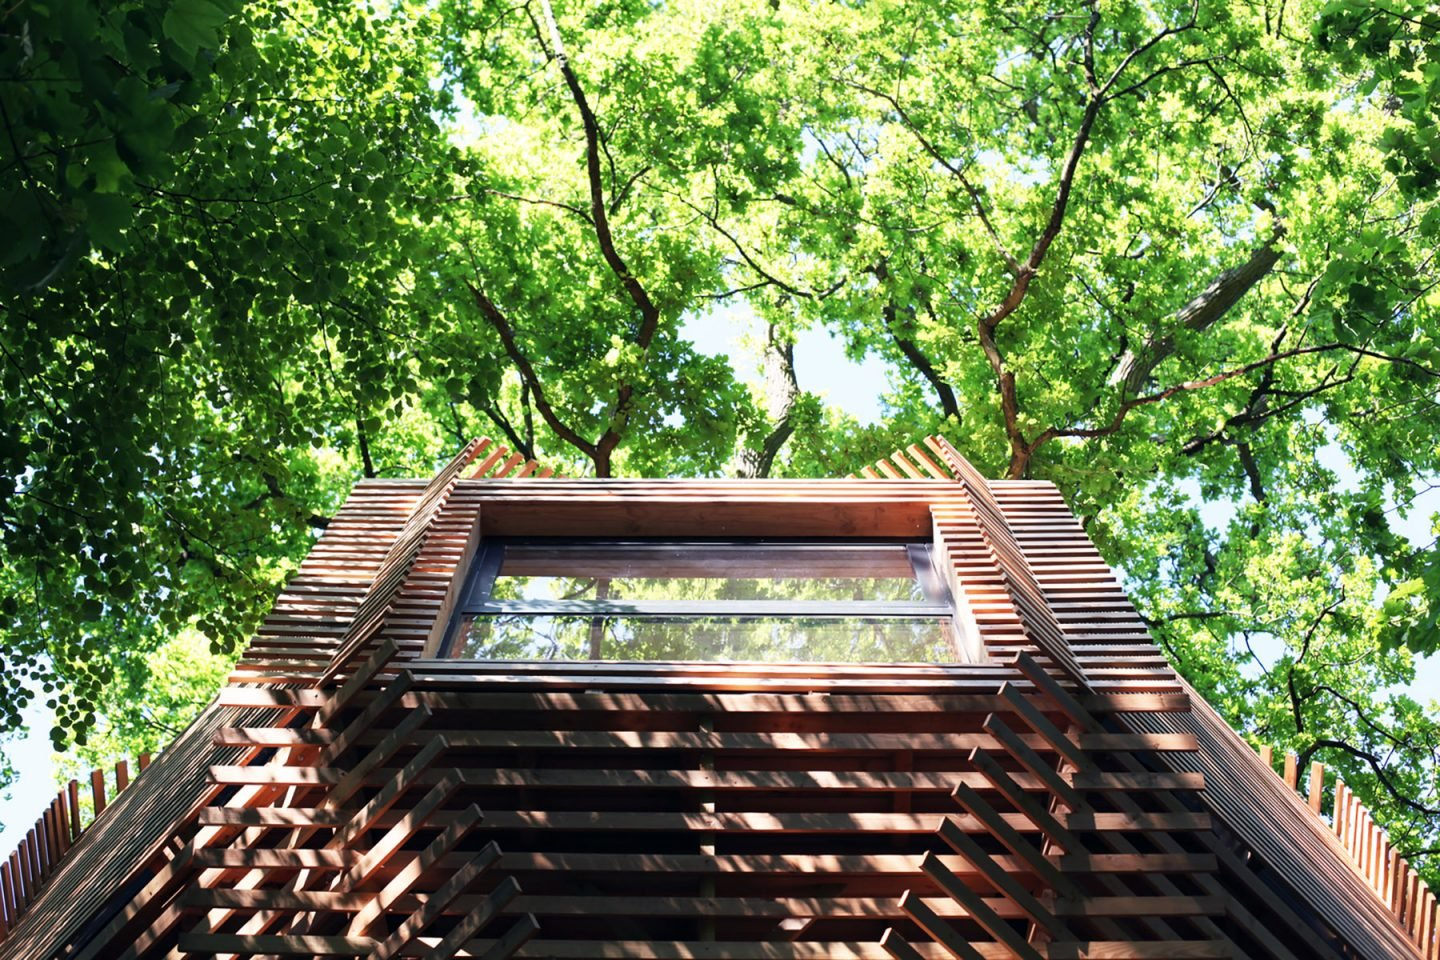 iGNANT-Architecture-Atelier-Lavit-Origin-Tree-House-015